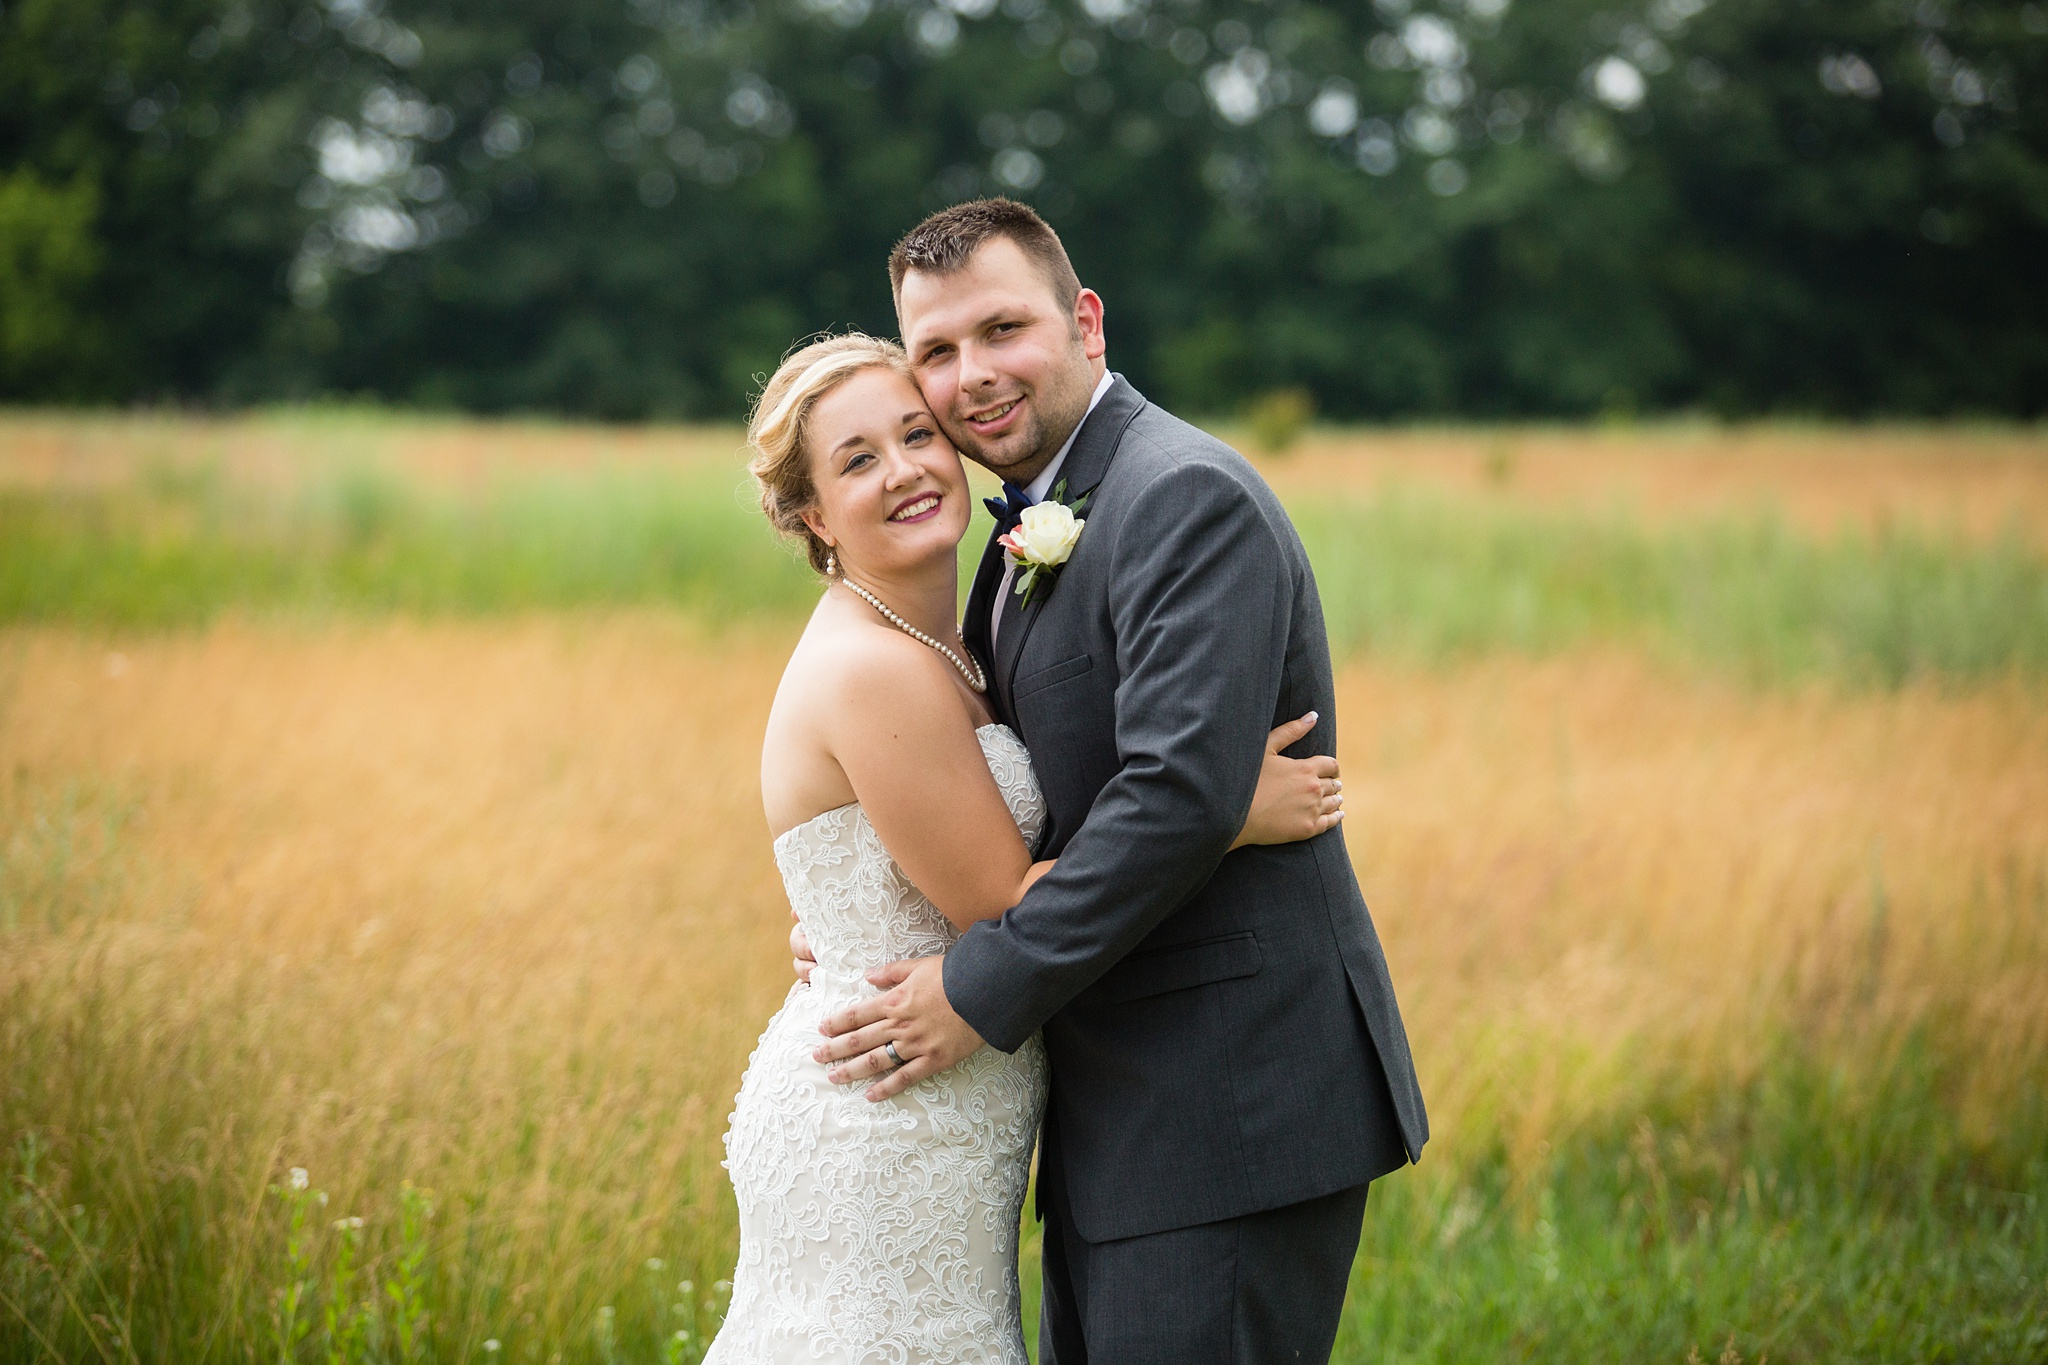 Brandon_Shafer_Photography_Grand_Rapids_Bride_Groom_0034.jpg